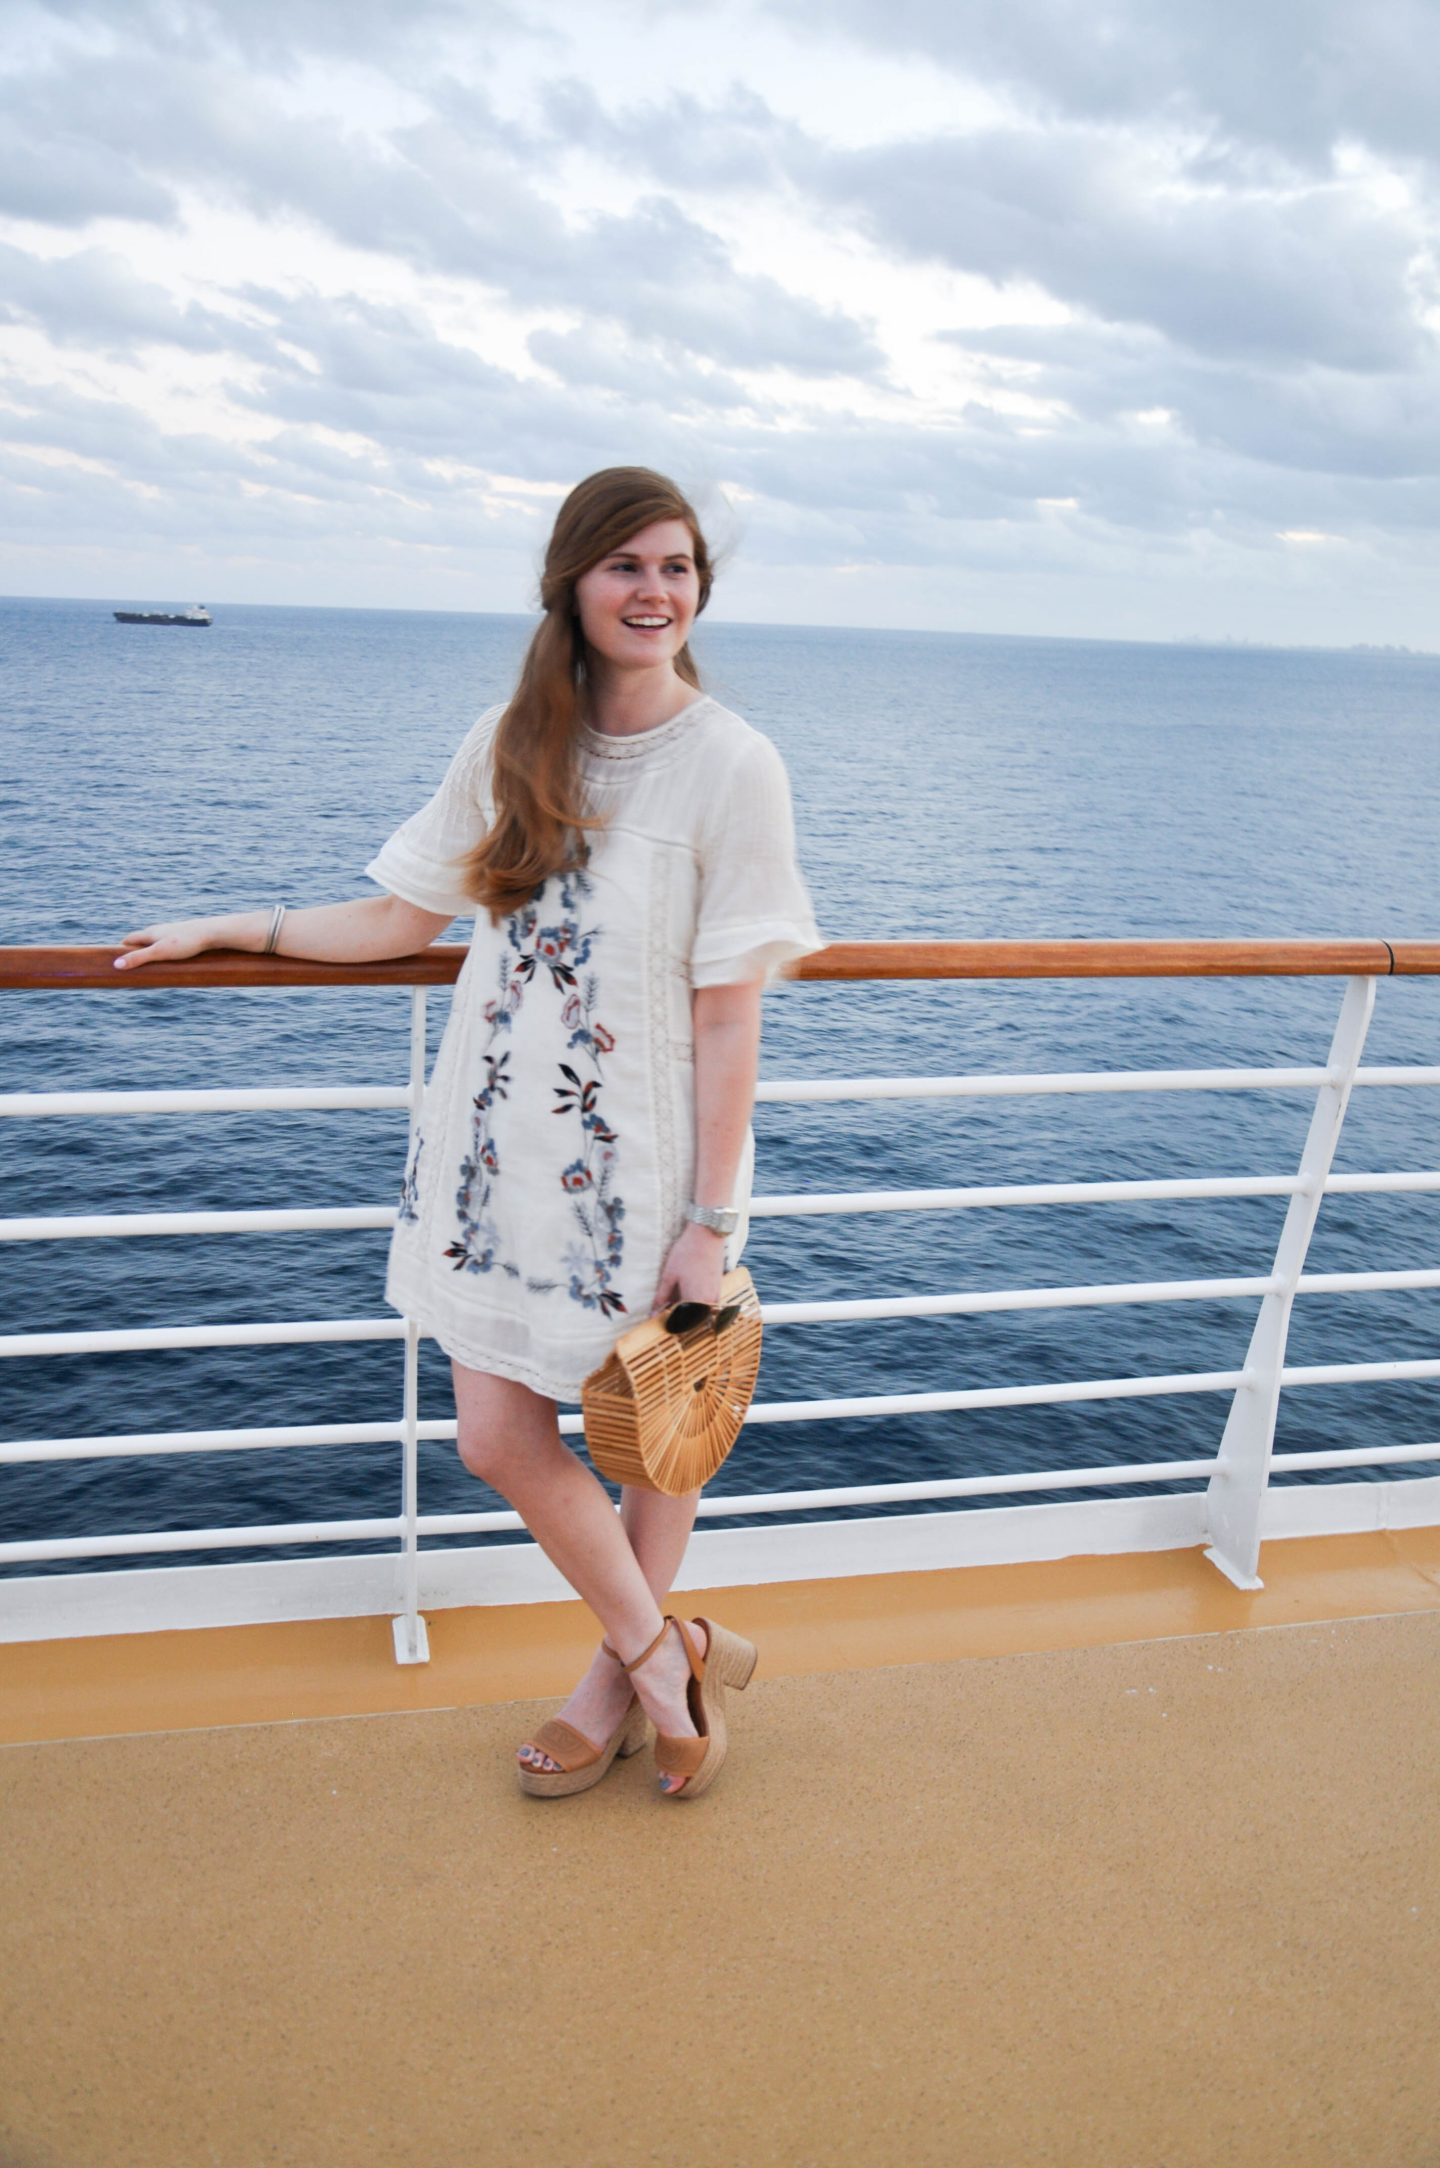 Lifestyle blogger Mollie Sheperdson goes on a cruise with Royal Caribbean